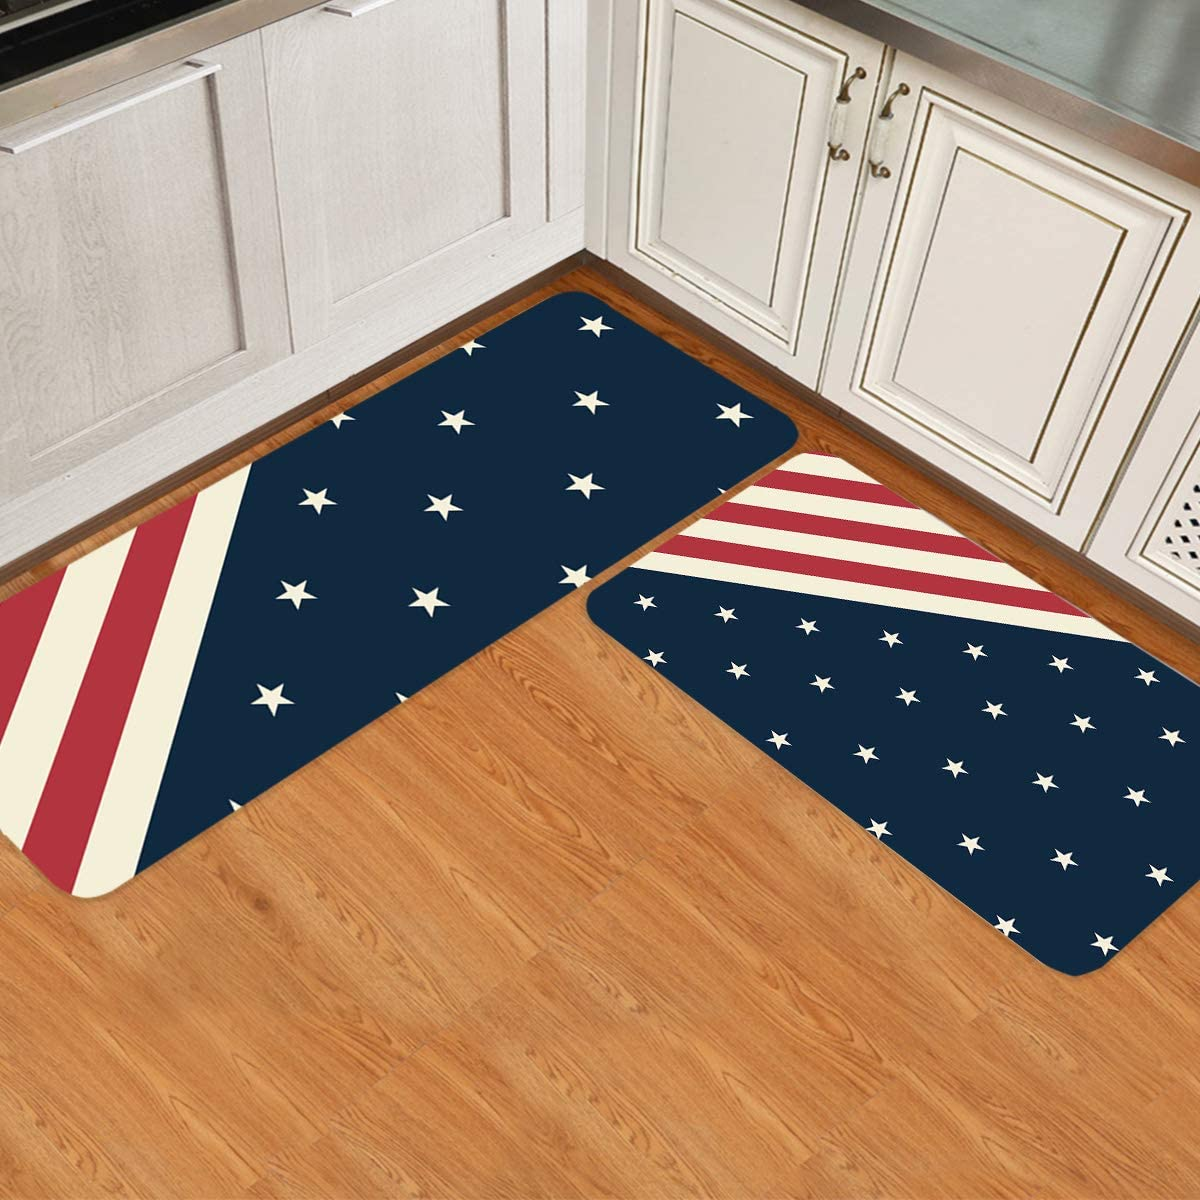 ARTSHOWING American Flag Decor Kitchen Rugs and Mats Set of 2, Non Slip and Durable Comfort Floor Mat for Home Sink Laundry Office Use, Nice Gift - Stripes and Stars Pattern